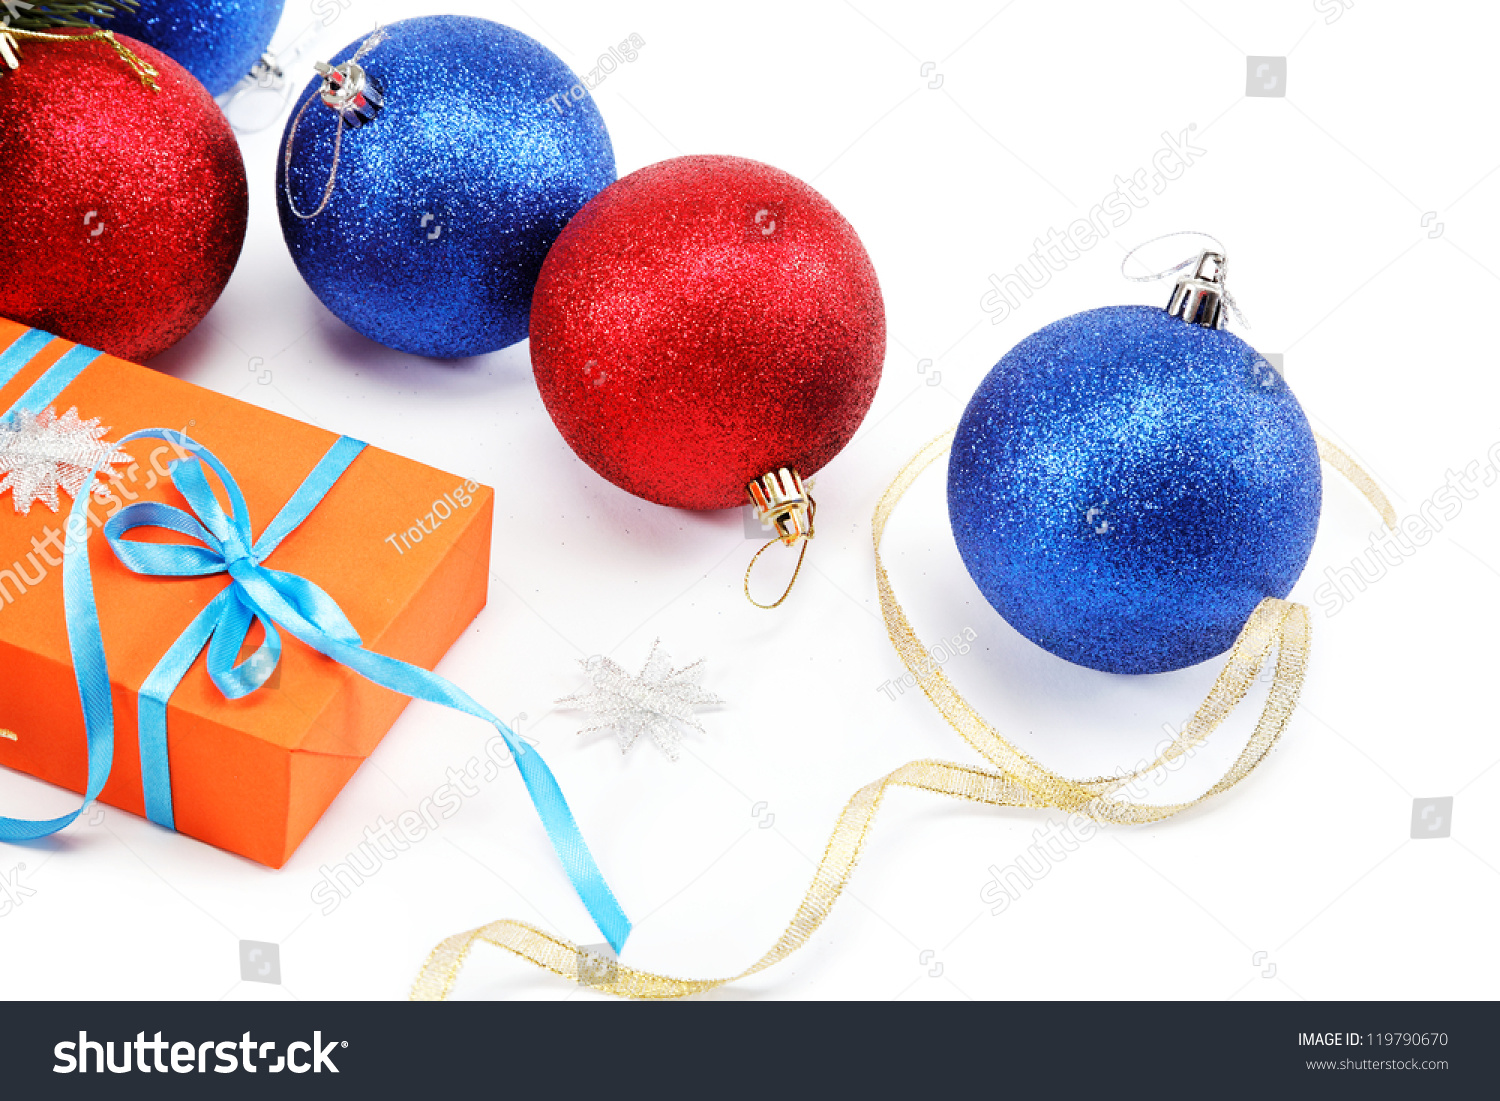 Christmas decorations and gifts on a white background. | EZ Canvas